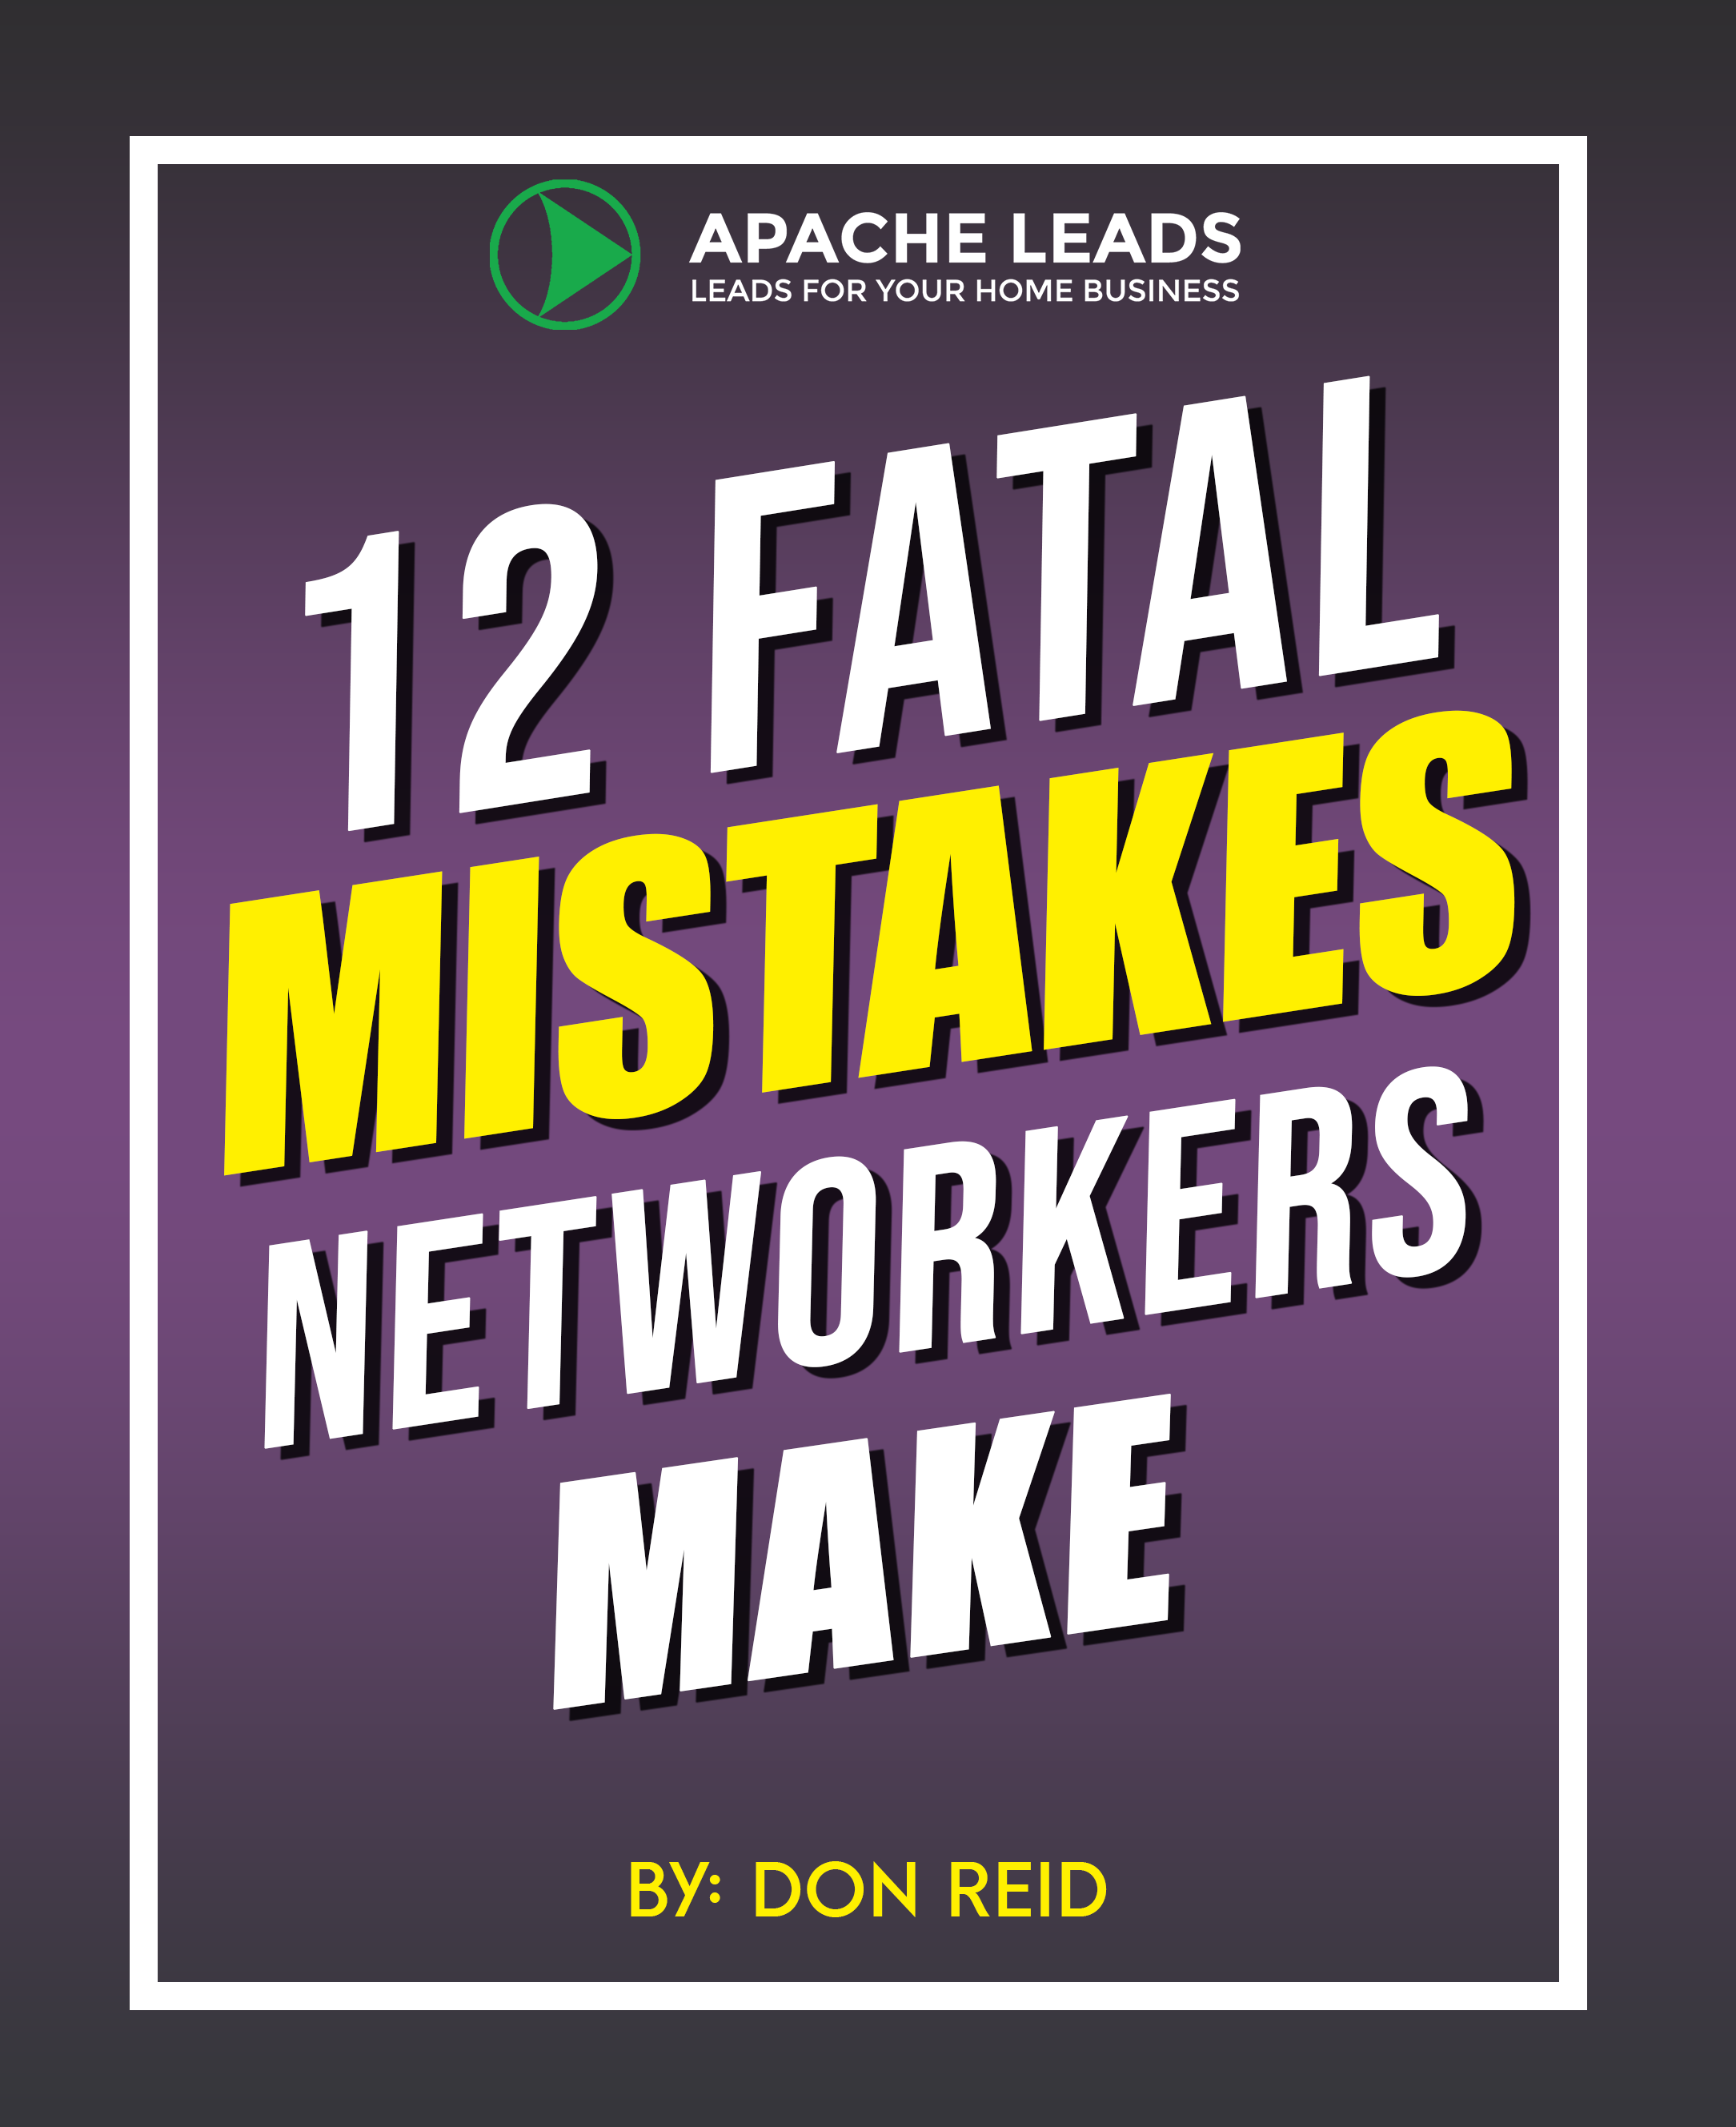 12 Fatal Mistakes Networkers Make